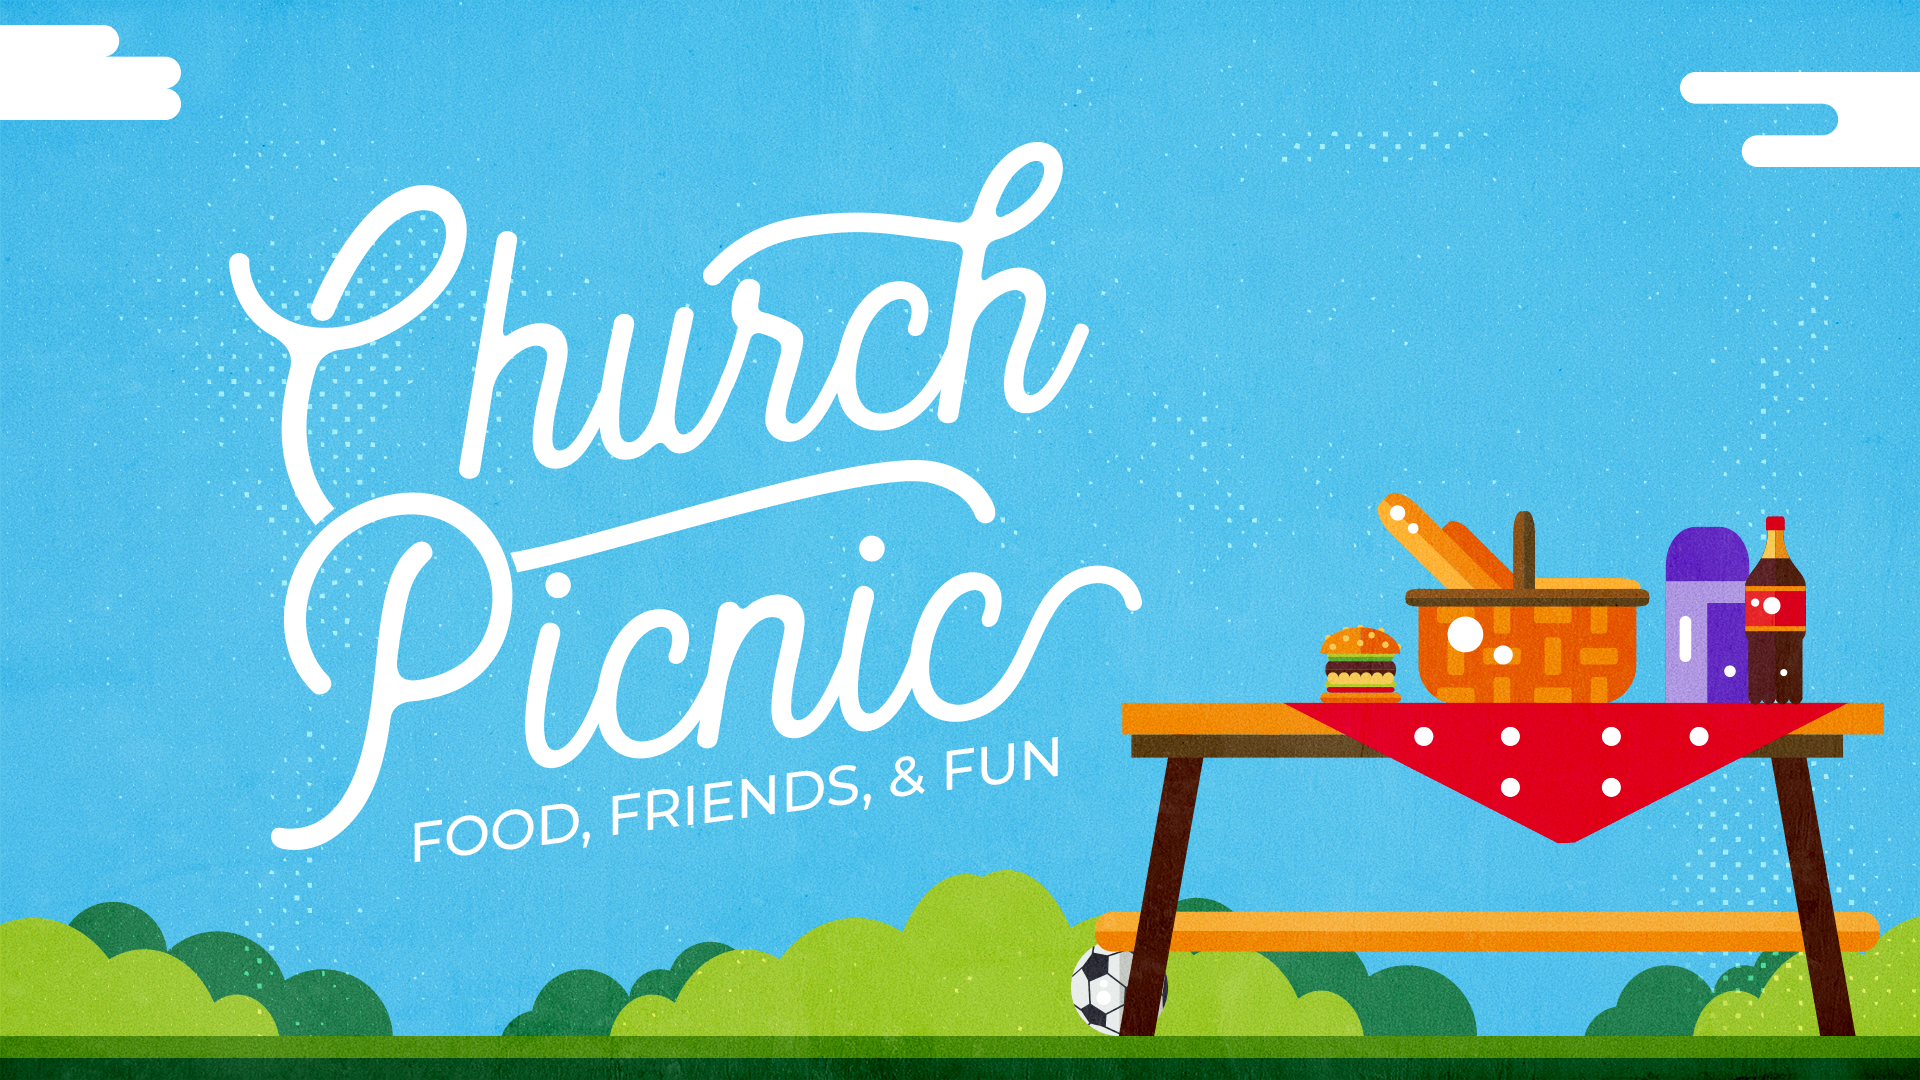 Church Picnic graphic - Food, Friends, and Fun